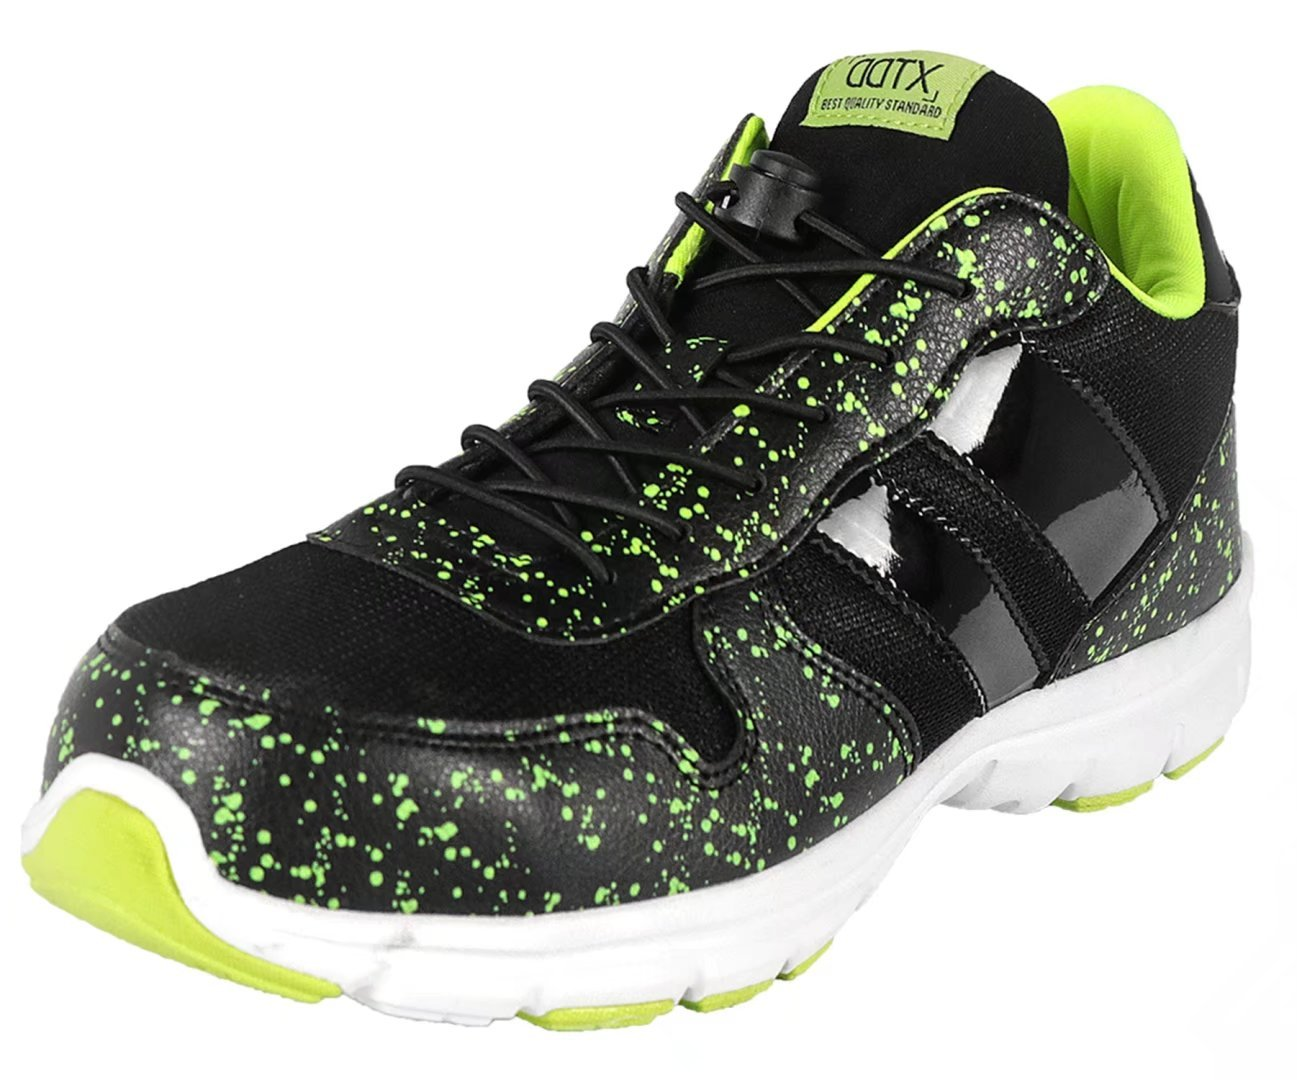 DDTX Spring and Summer Lightweight Safety Sneakers Mens' Steel Toe Work Shoes Black (11.5) by DDTX (Image #1)